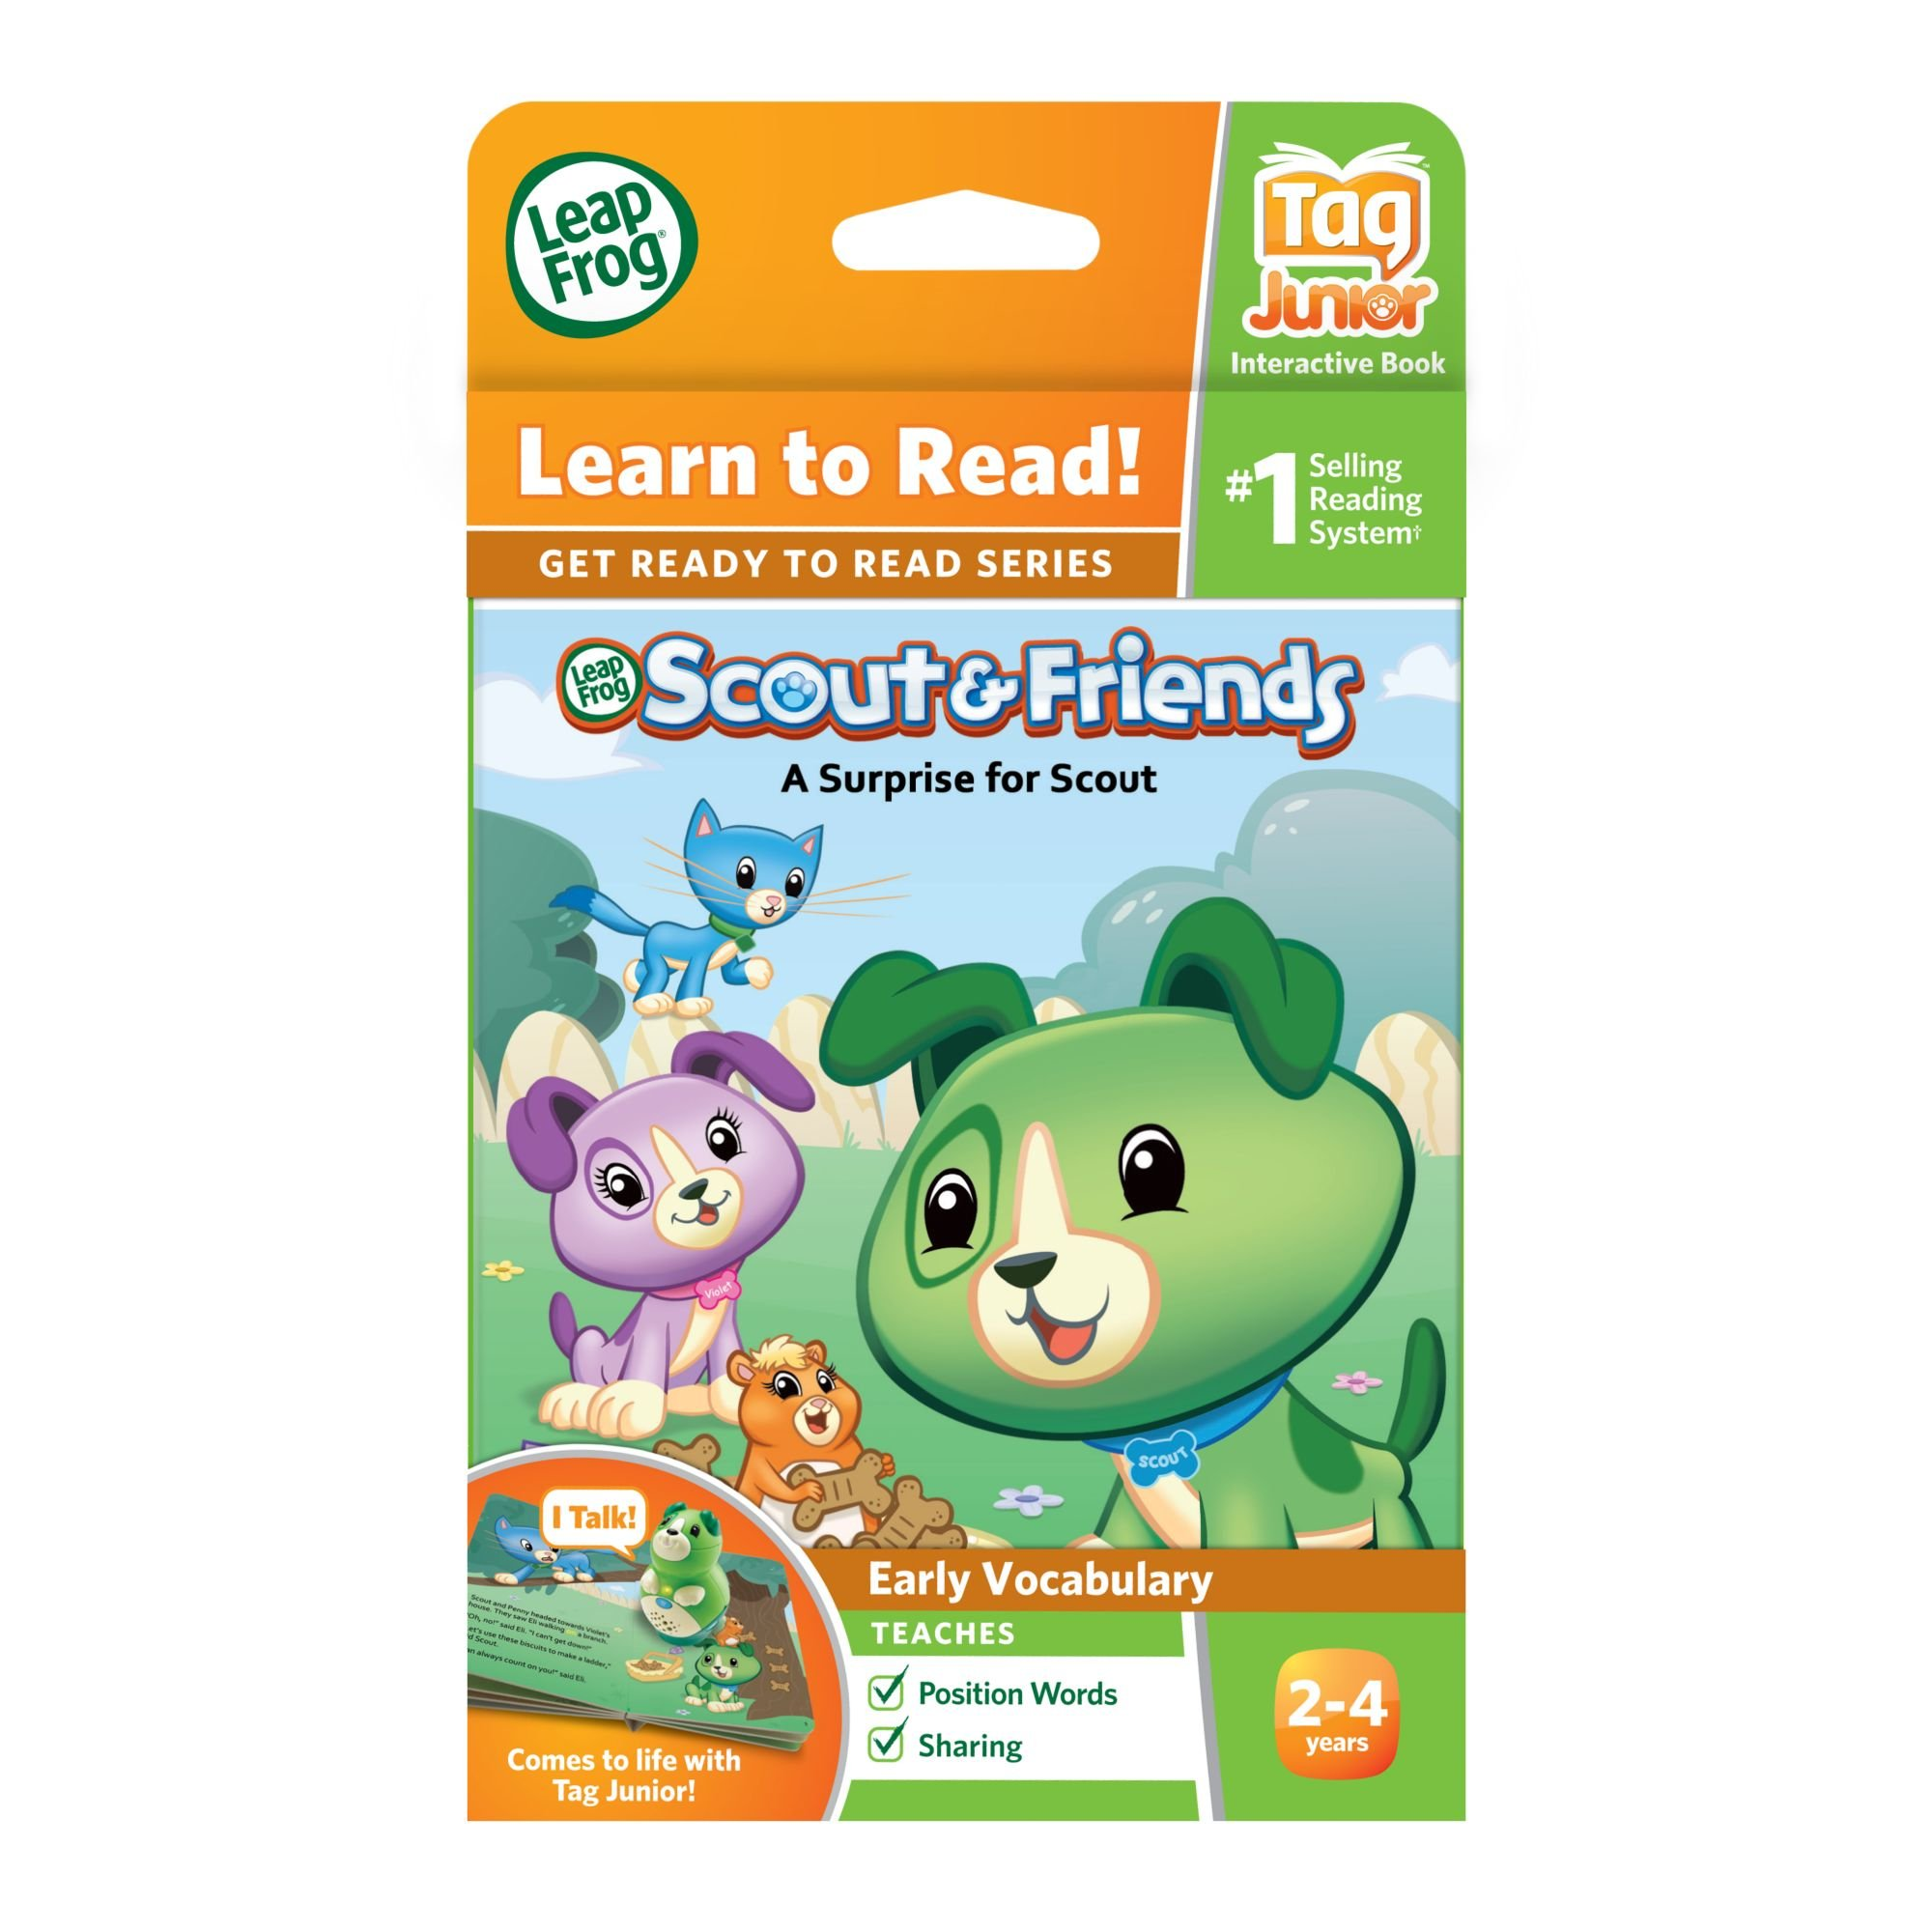 LeapFrog Tag Junior Book Scout And Friends: A Surprise for Scout (works with LeapReader Junior) by LeapFrog (Image #4)